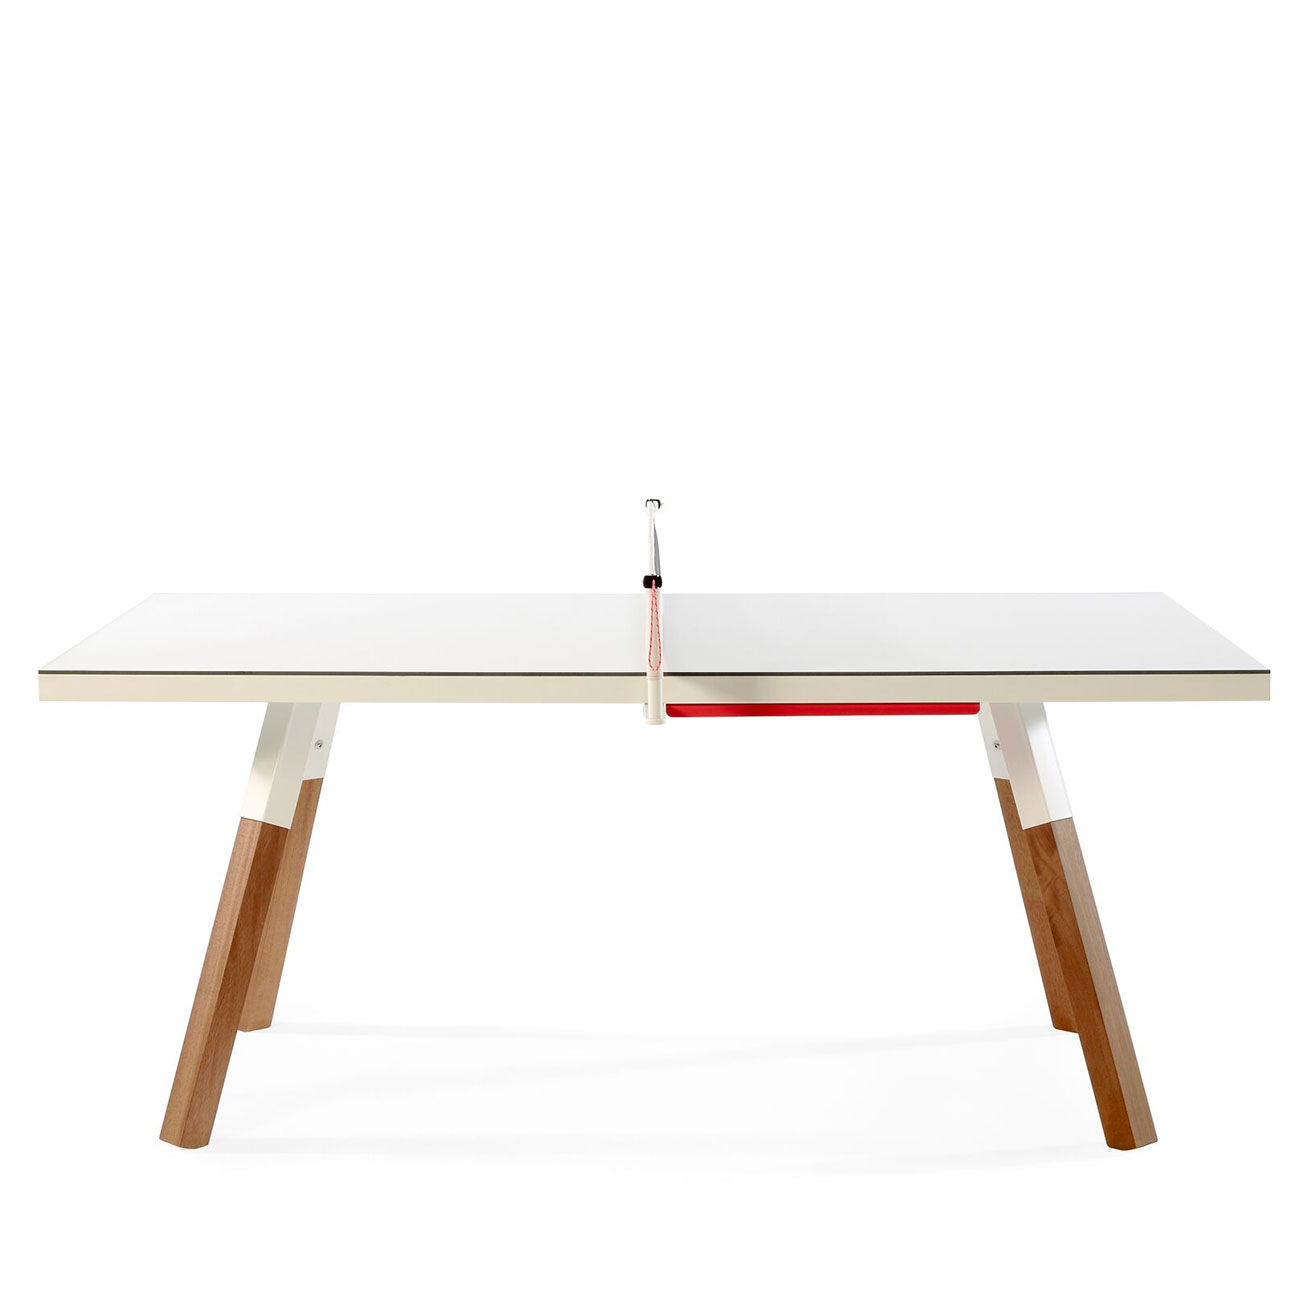 Outdoor table tennis dining table luxury outdoor living - Weatherproof table tennis table ...